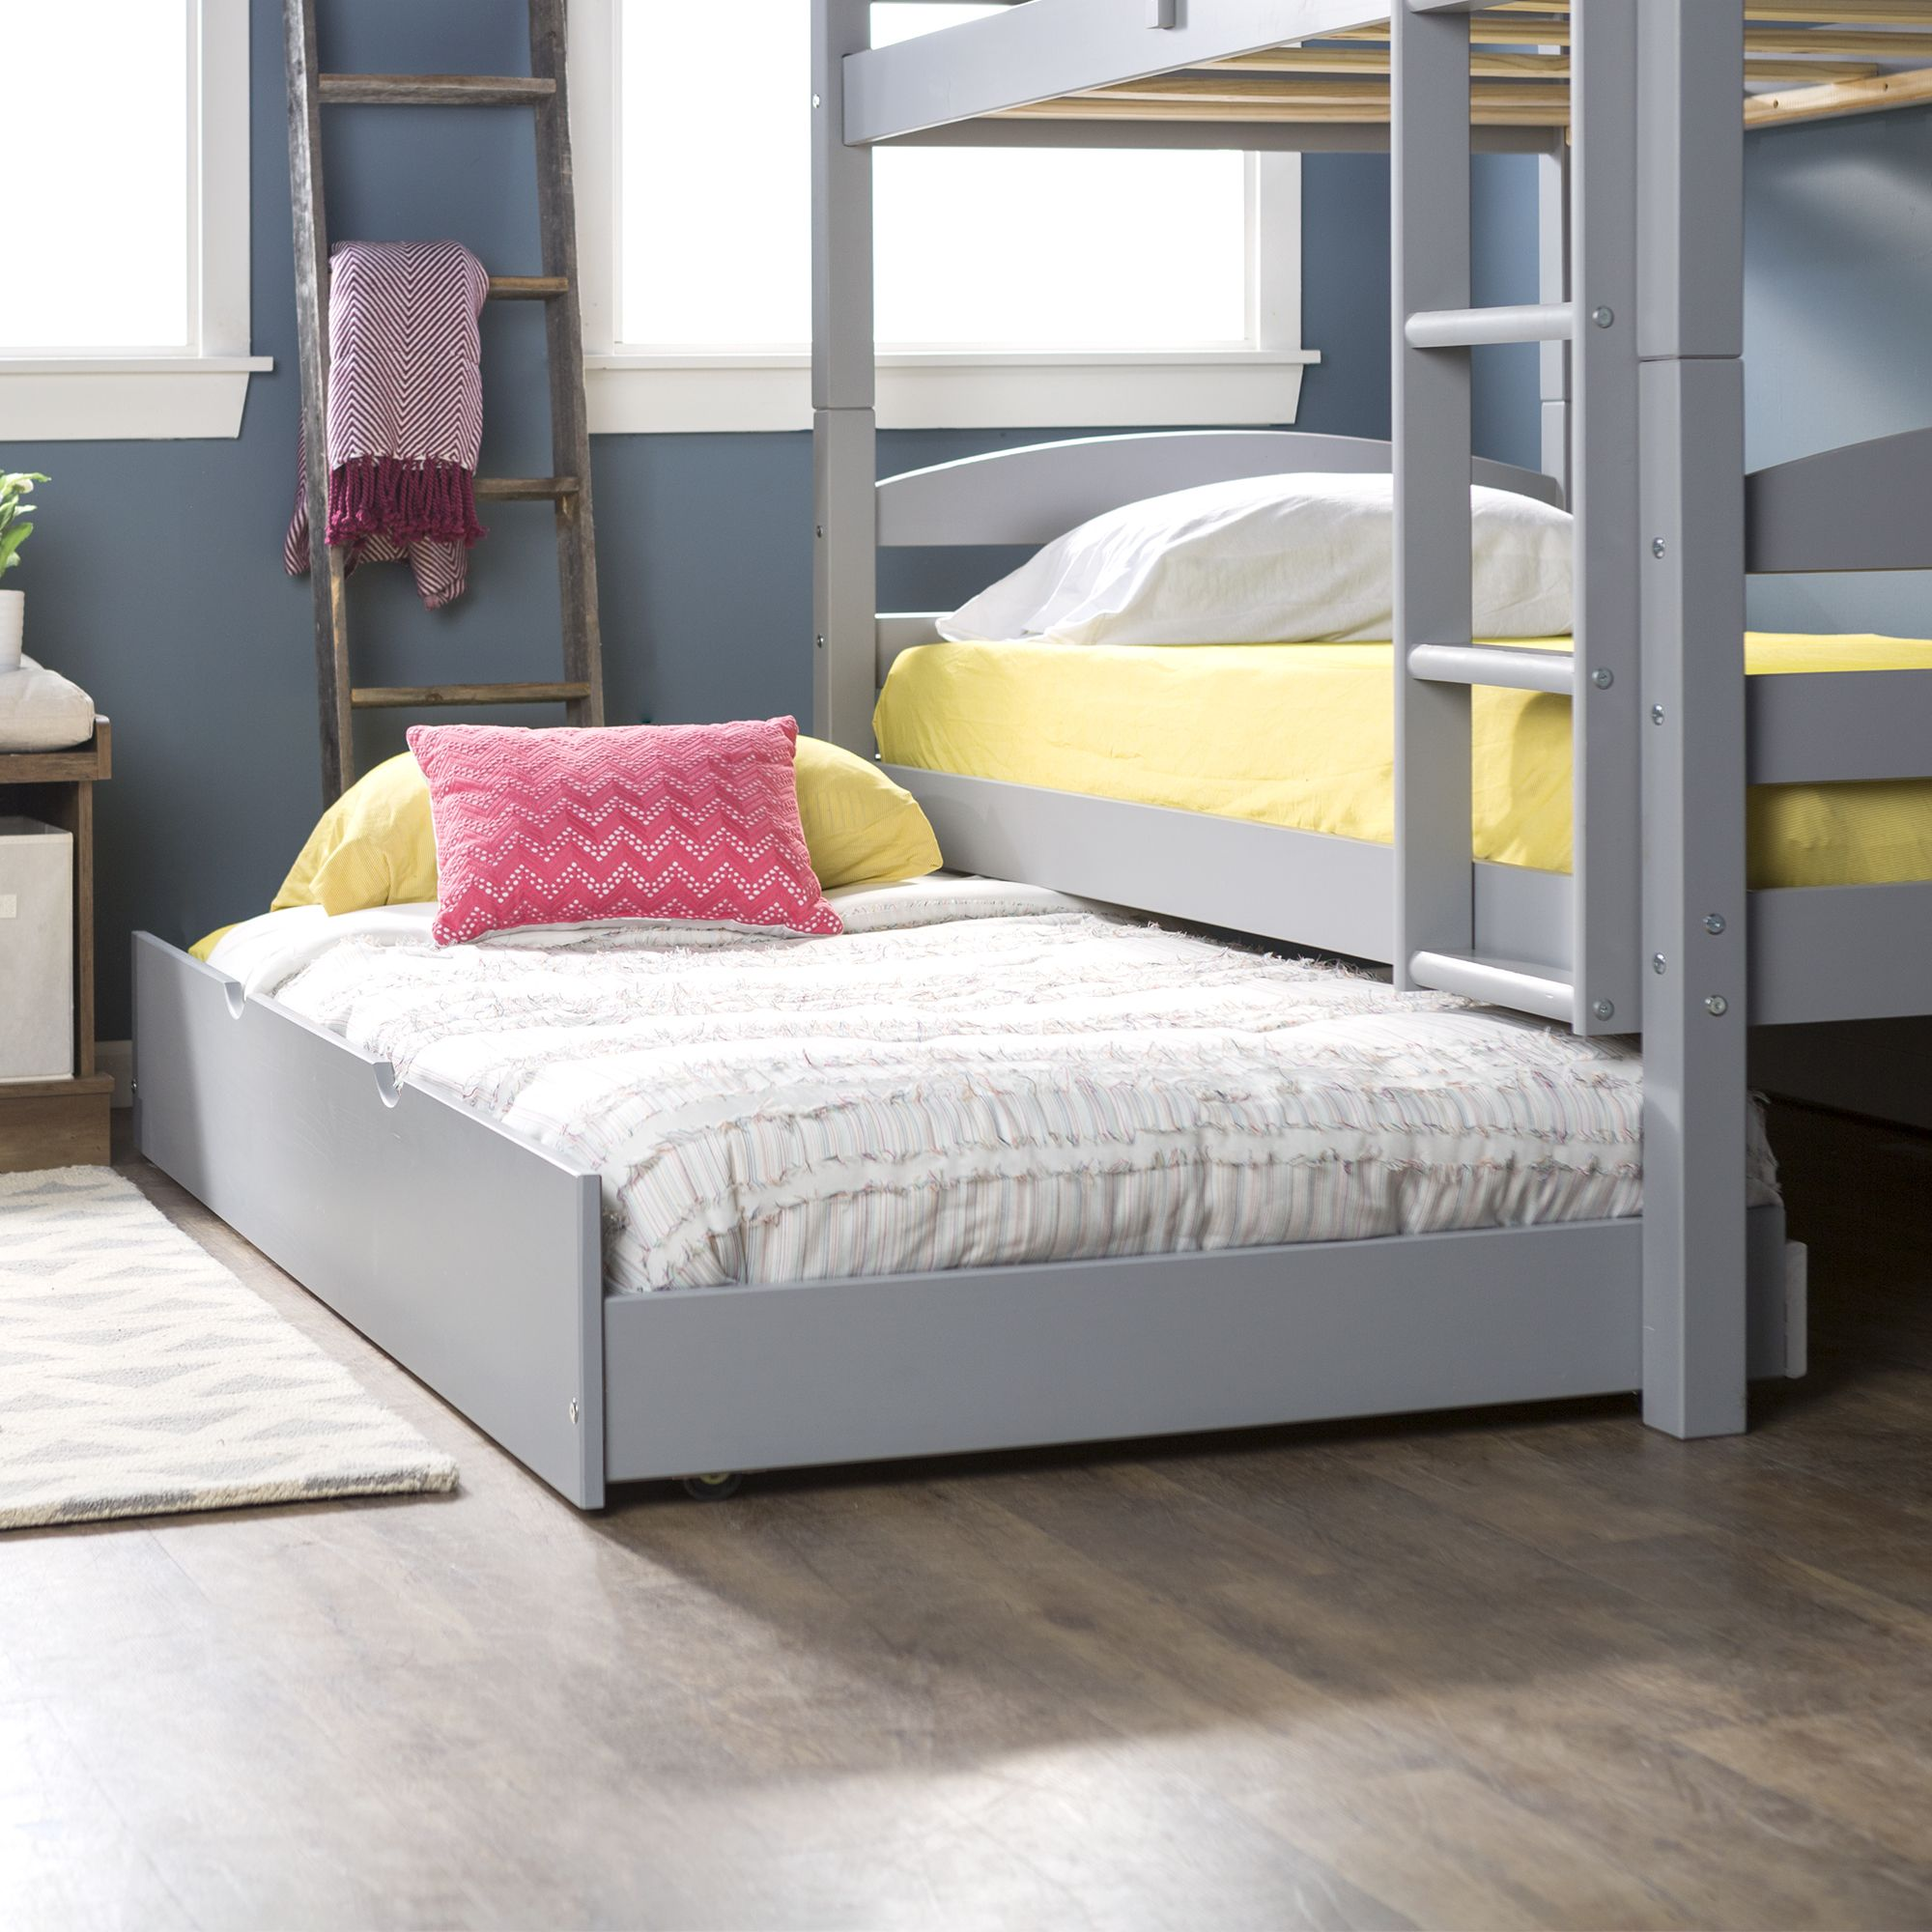 W Trends Twin Size Solid Wood Trundle Bed Gray Bjs Wholesale Club